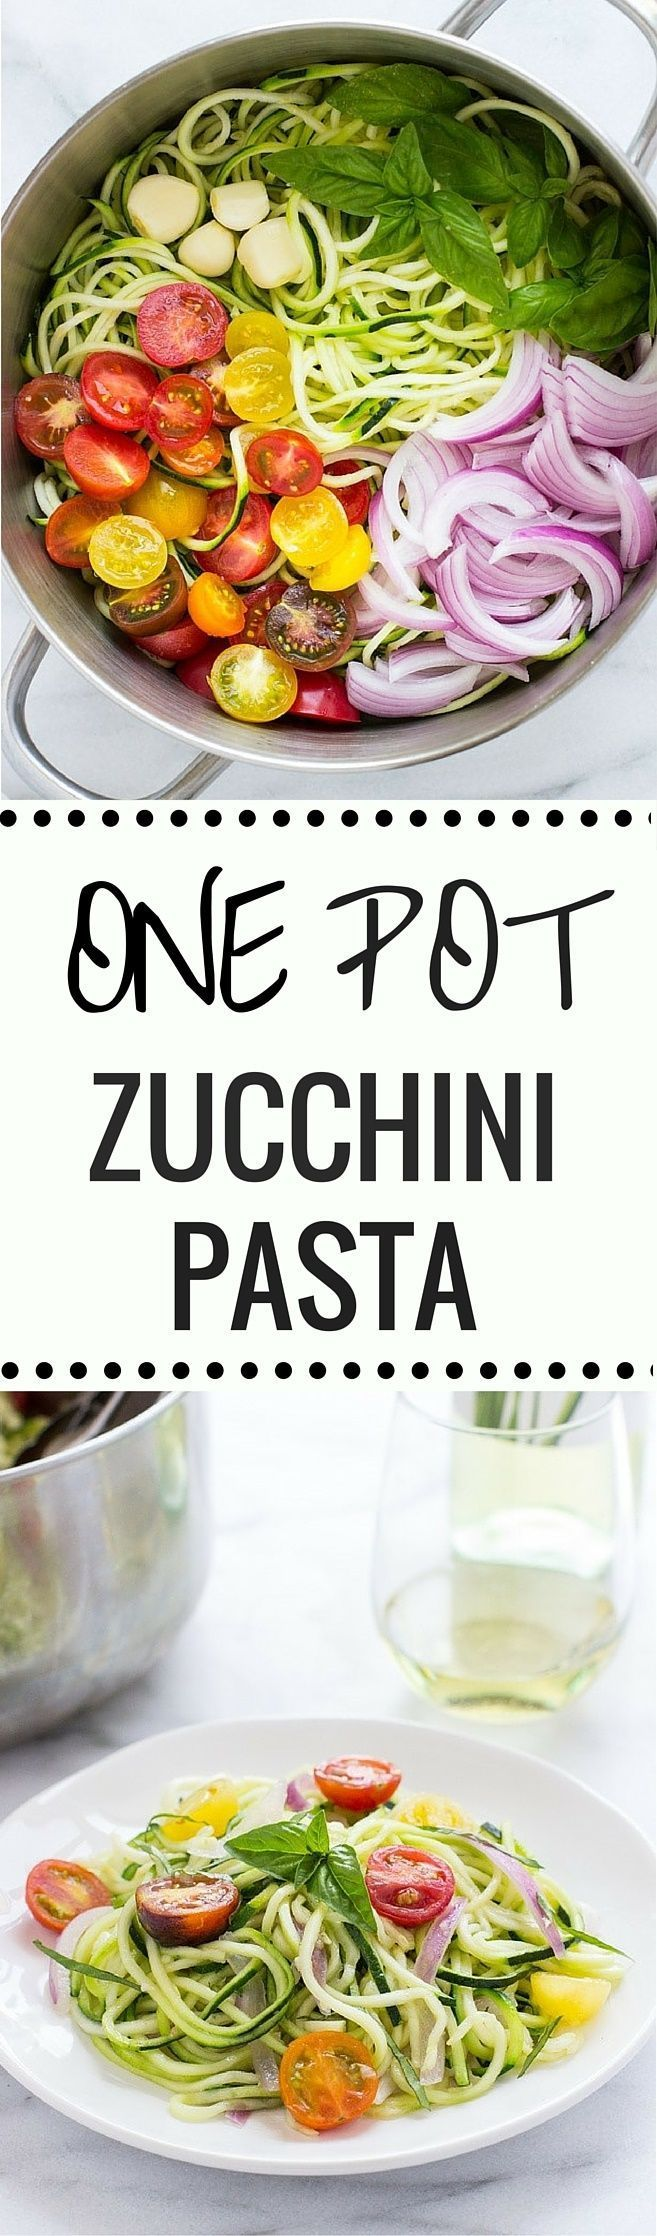 One Pot Zucchini Pasta- an easy, light and healthy meal made from summer's finest produce. Grain-free, gluten-free and it comes together in less than 20 minutes!